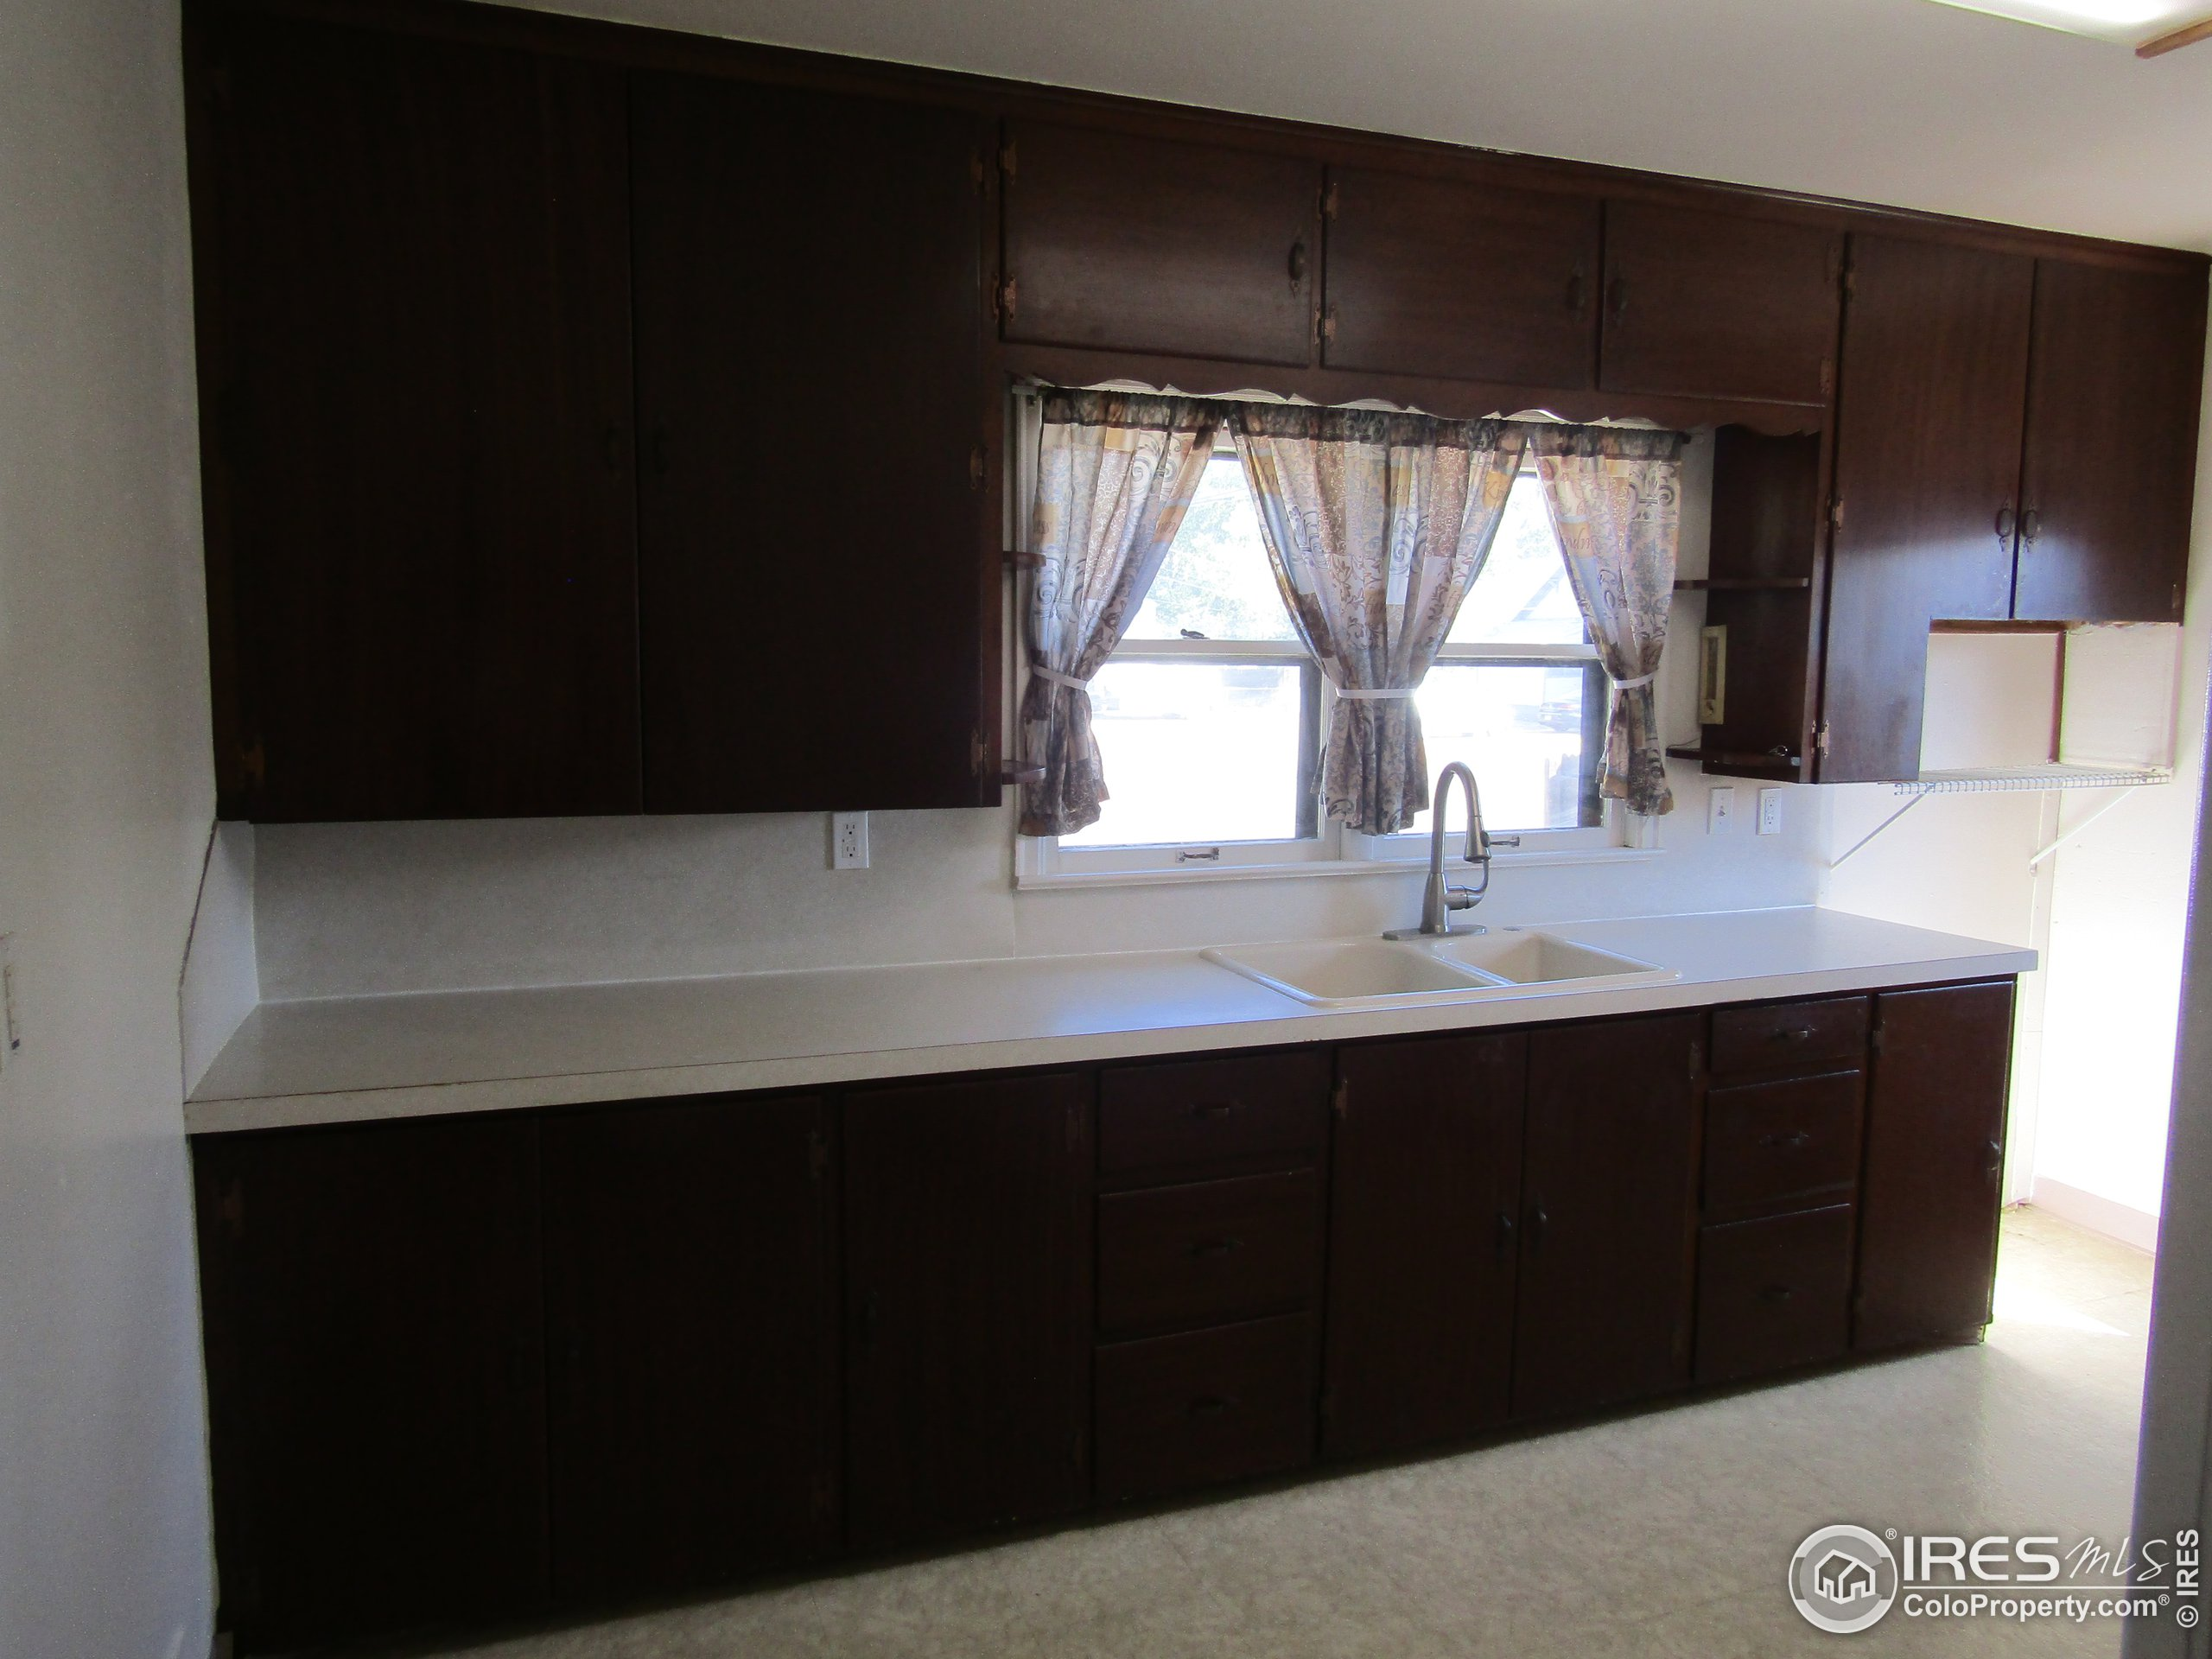 kitchen cabinetry/open space for freezer